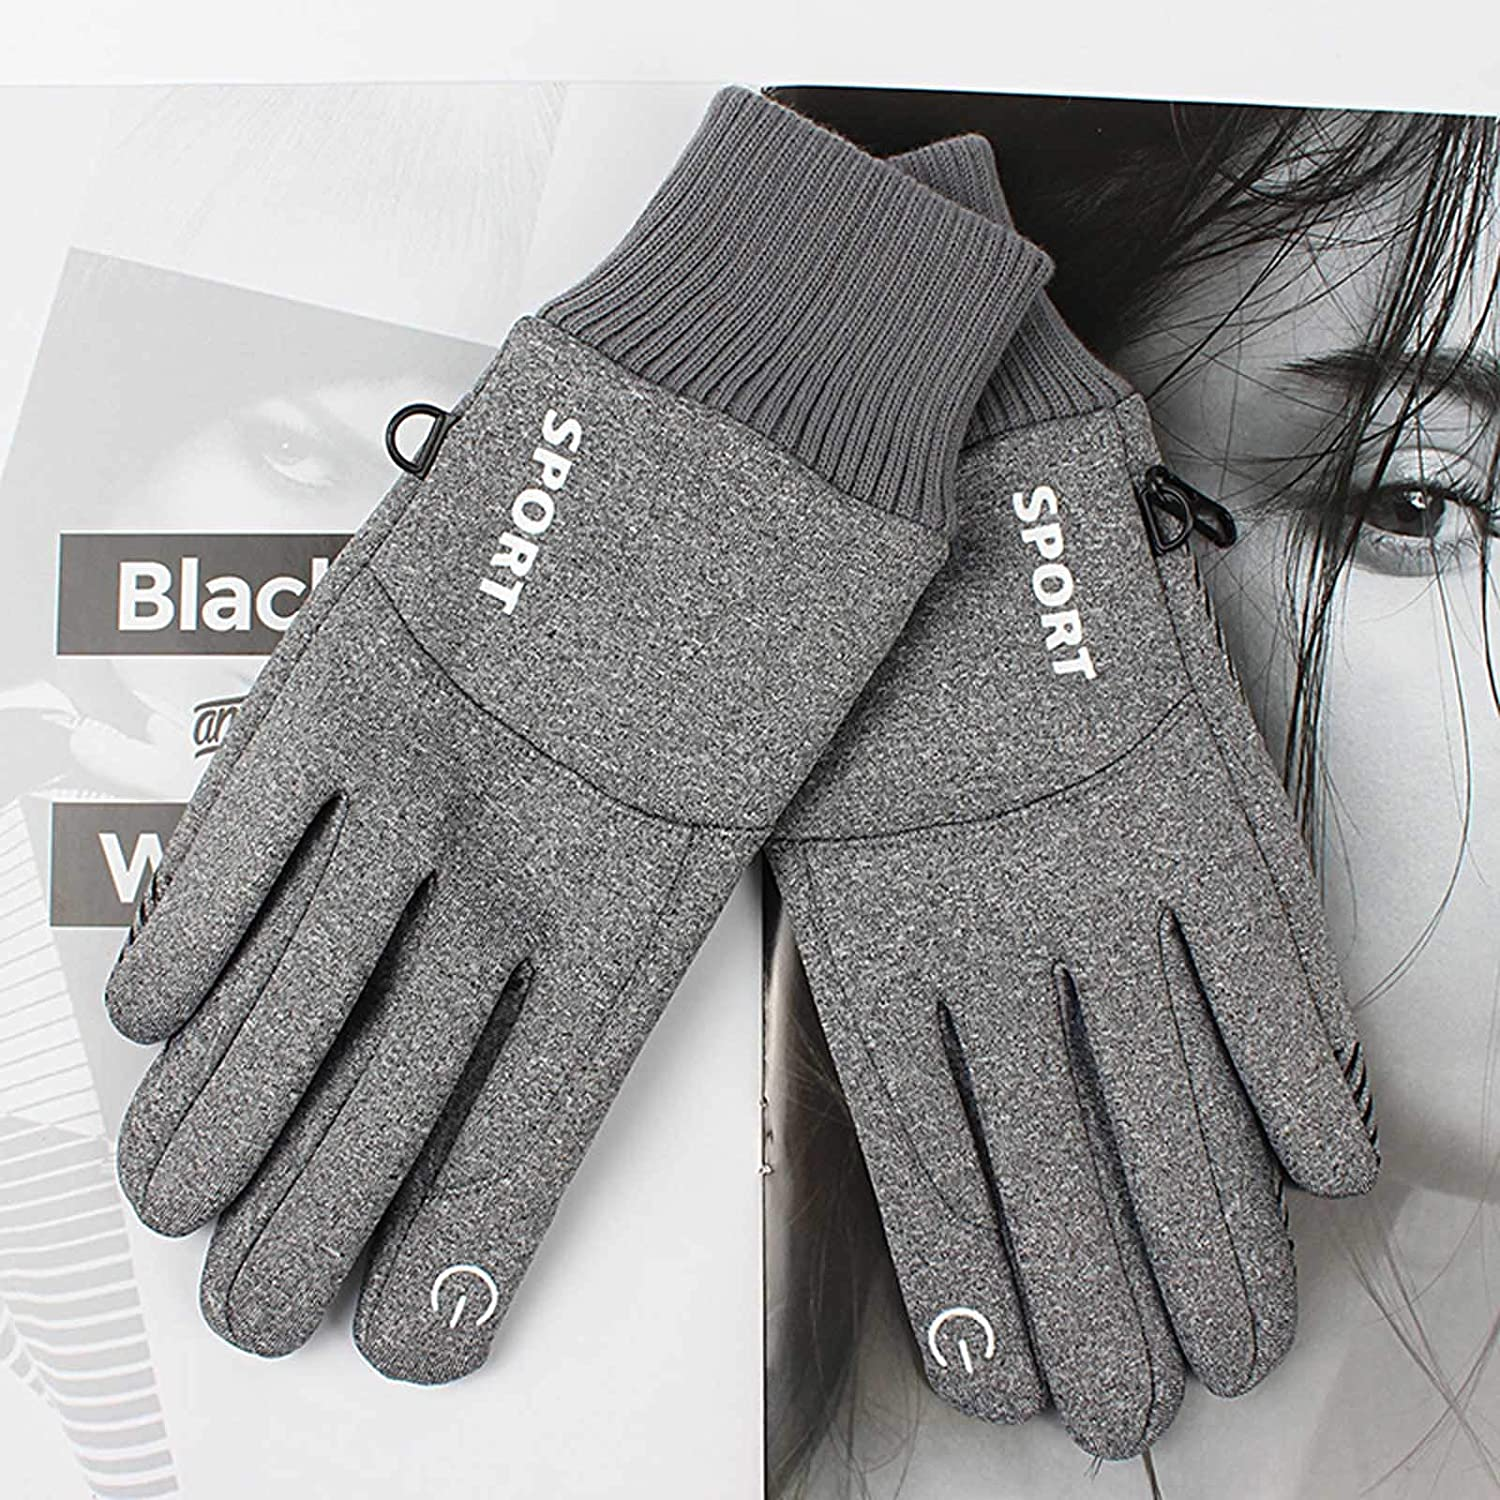 Winter Windproof and Warm Gloves, Outdoor Sports Touch Screen Plus Velvet Padded Gloves.